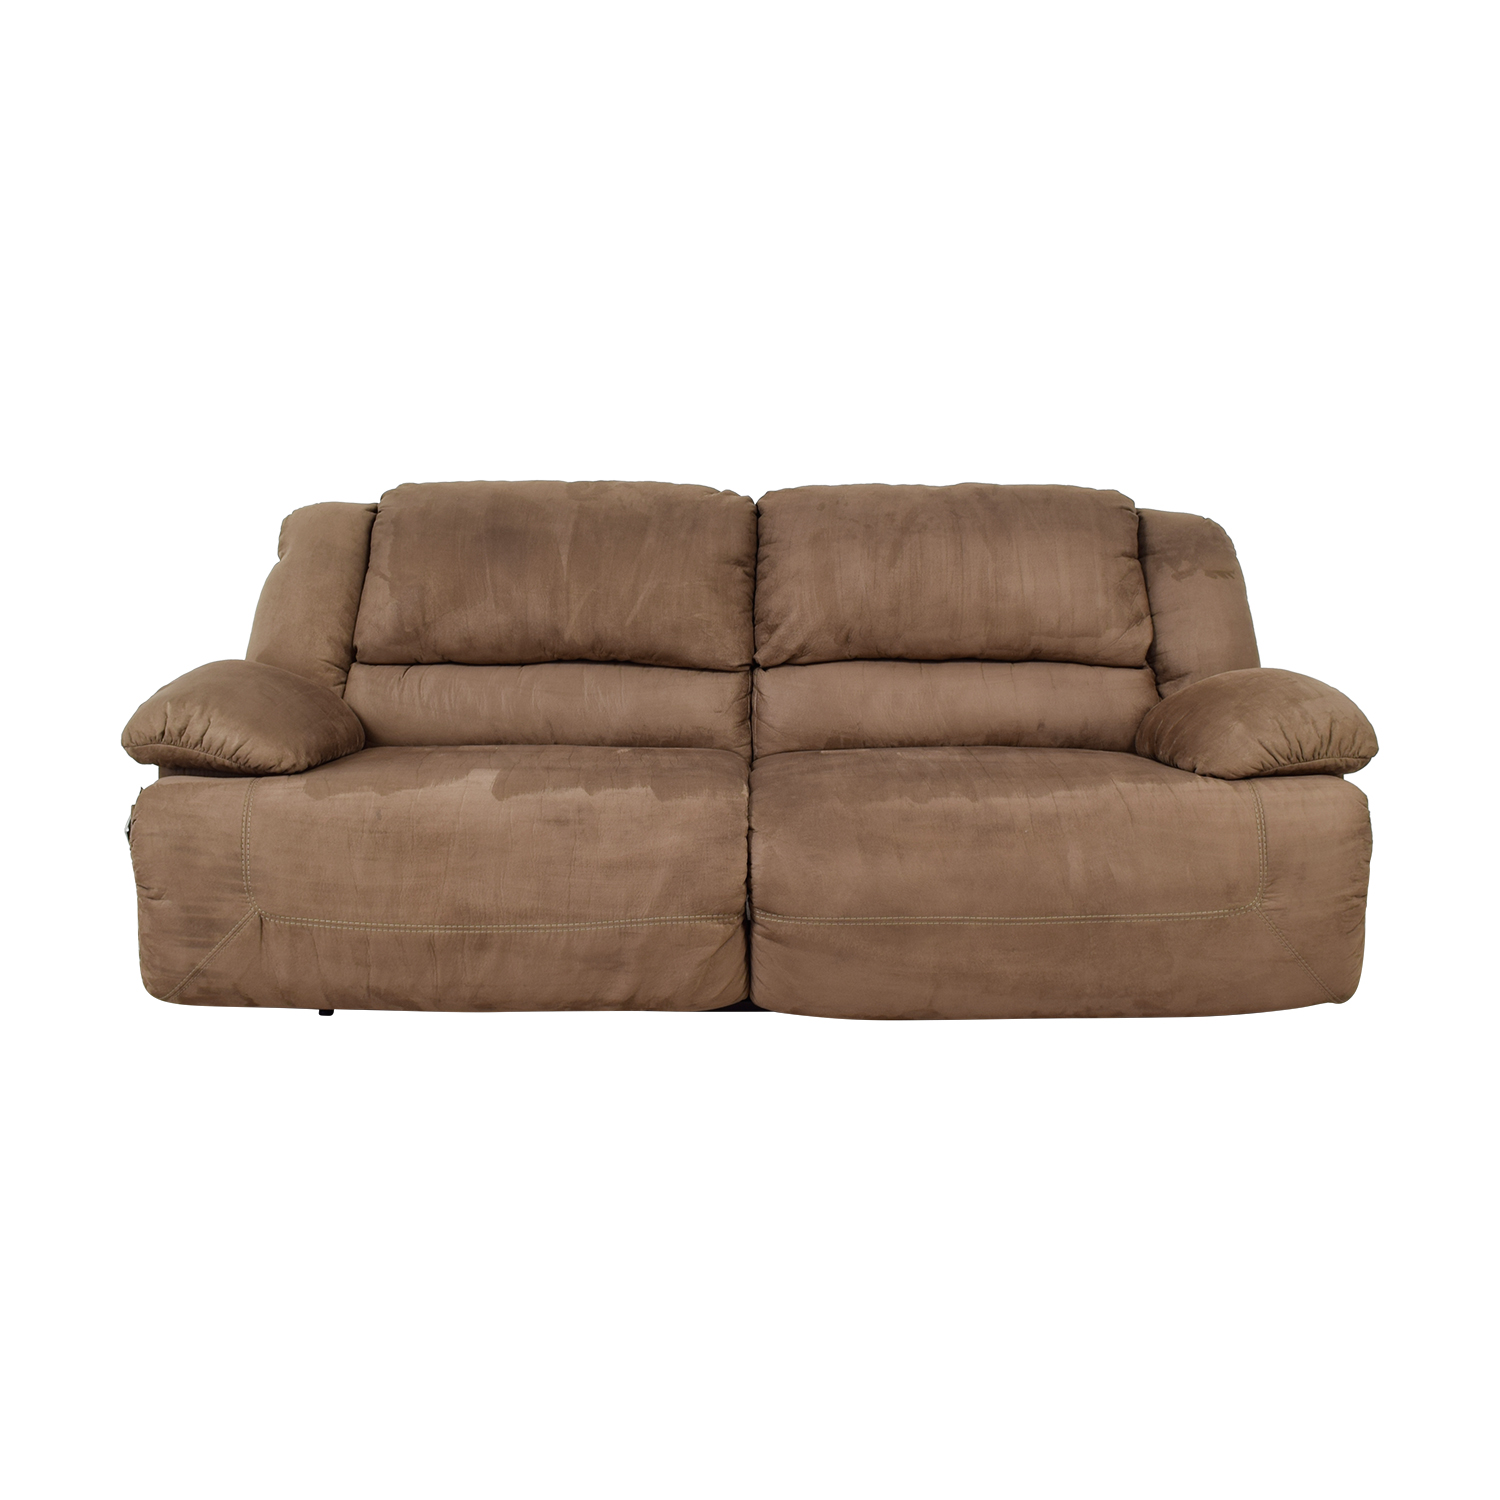 78 Off Ashley Furniture Ashley Furniture Mocha Reclining Sofa